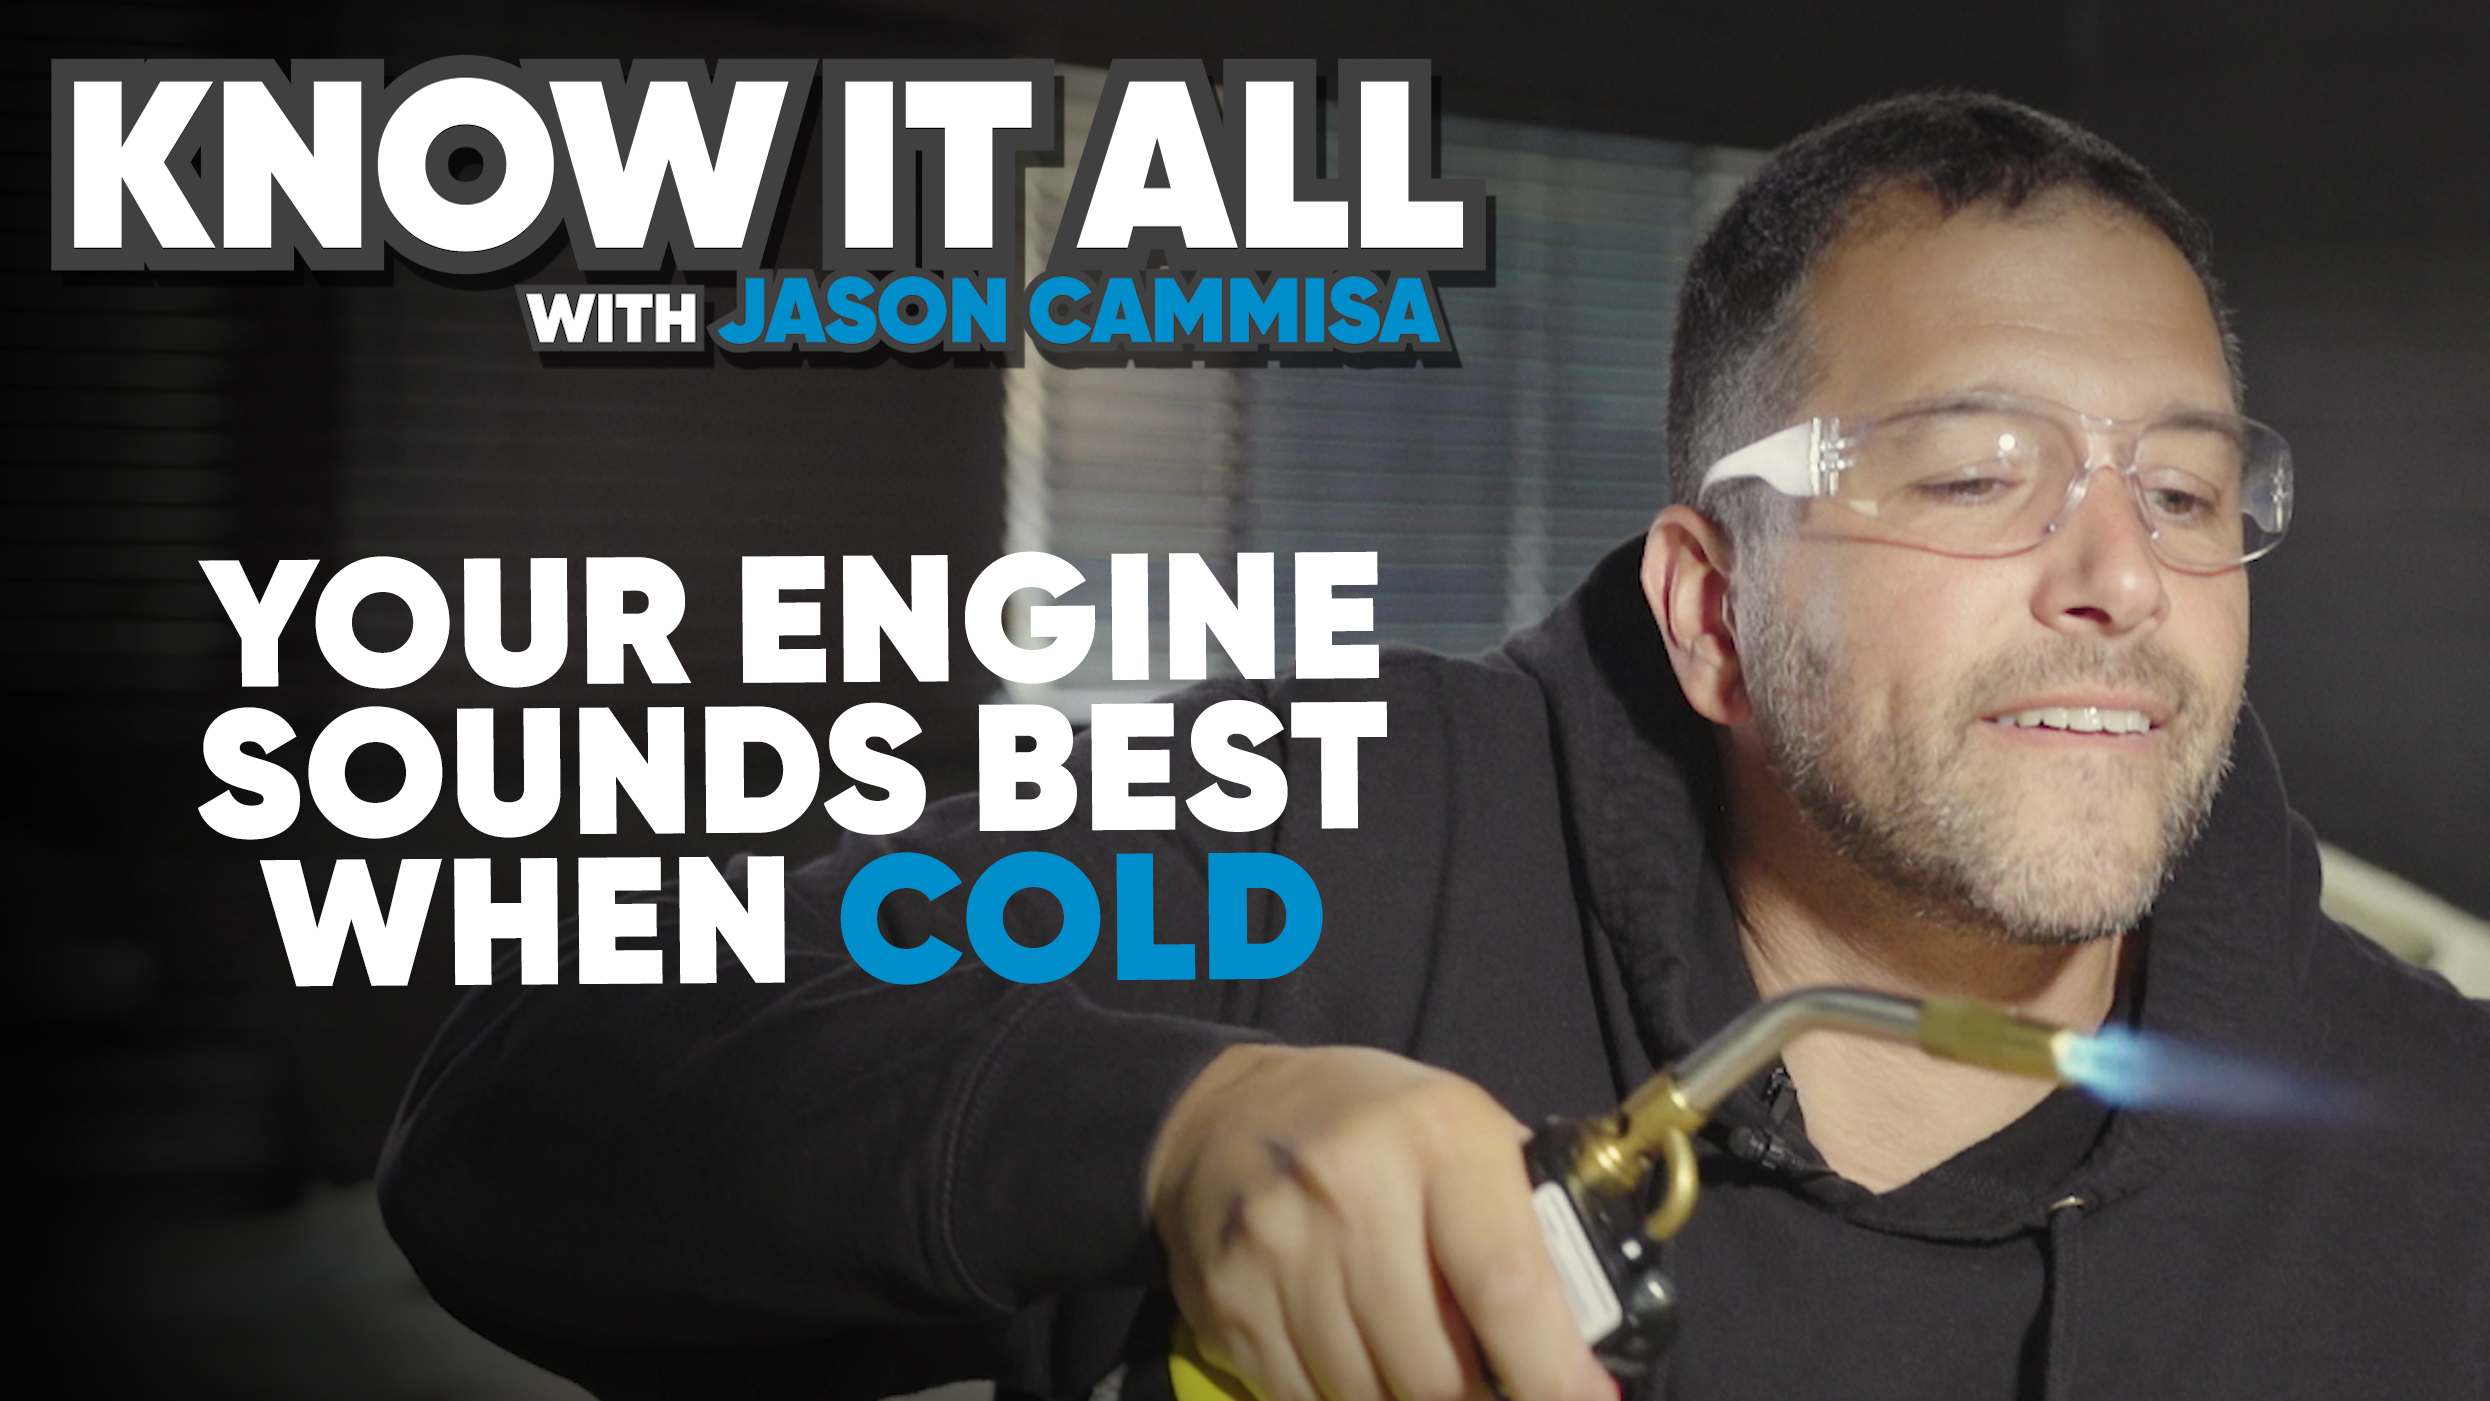 Know it all with Jason Cammisa